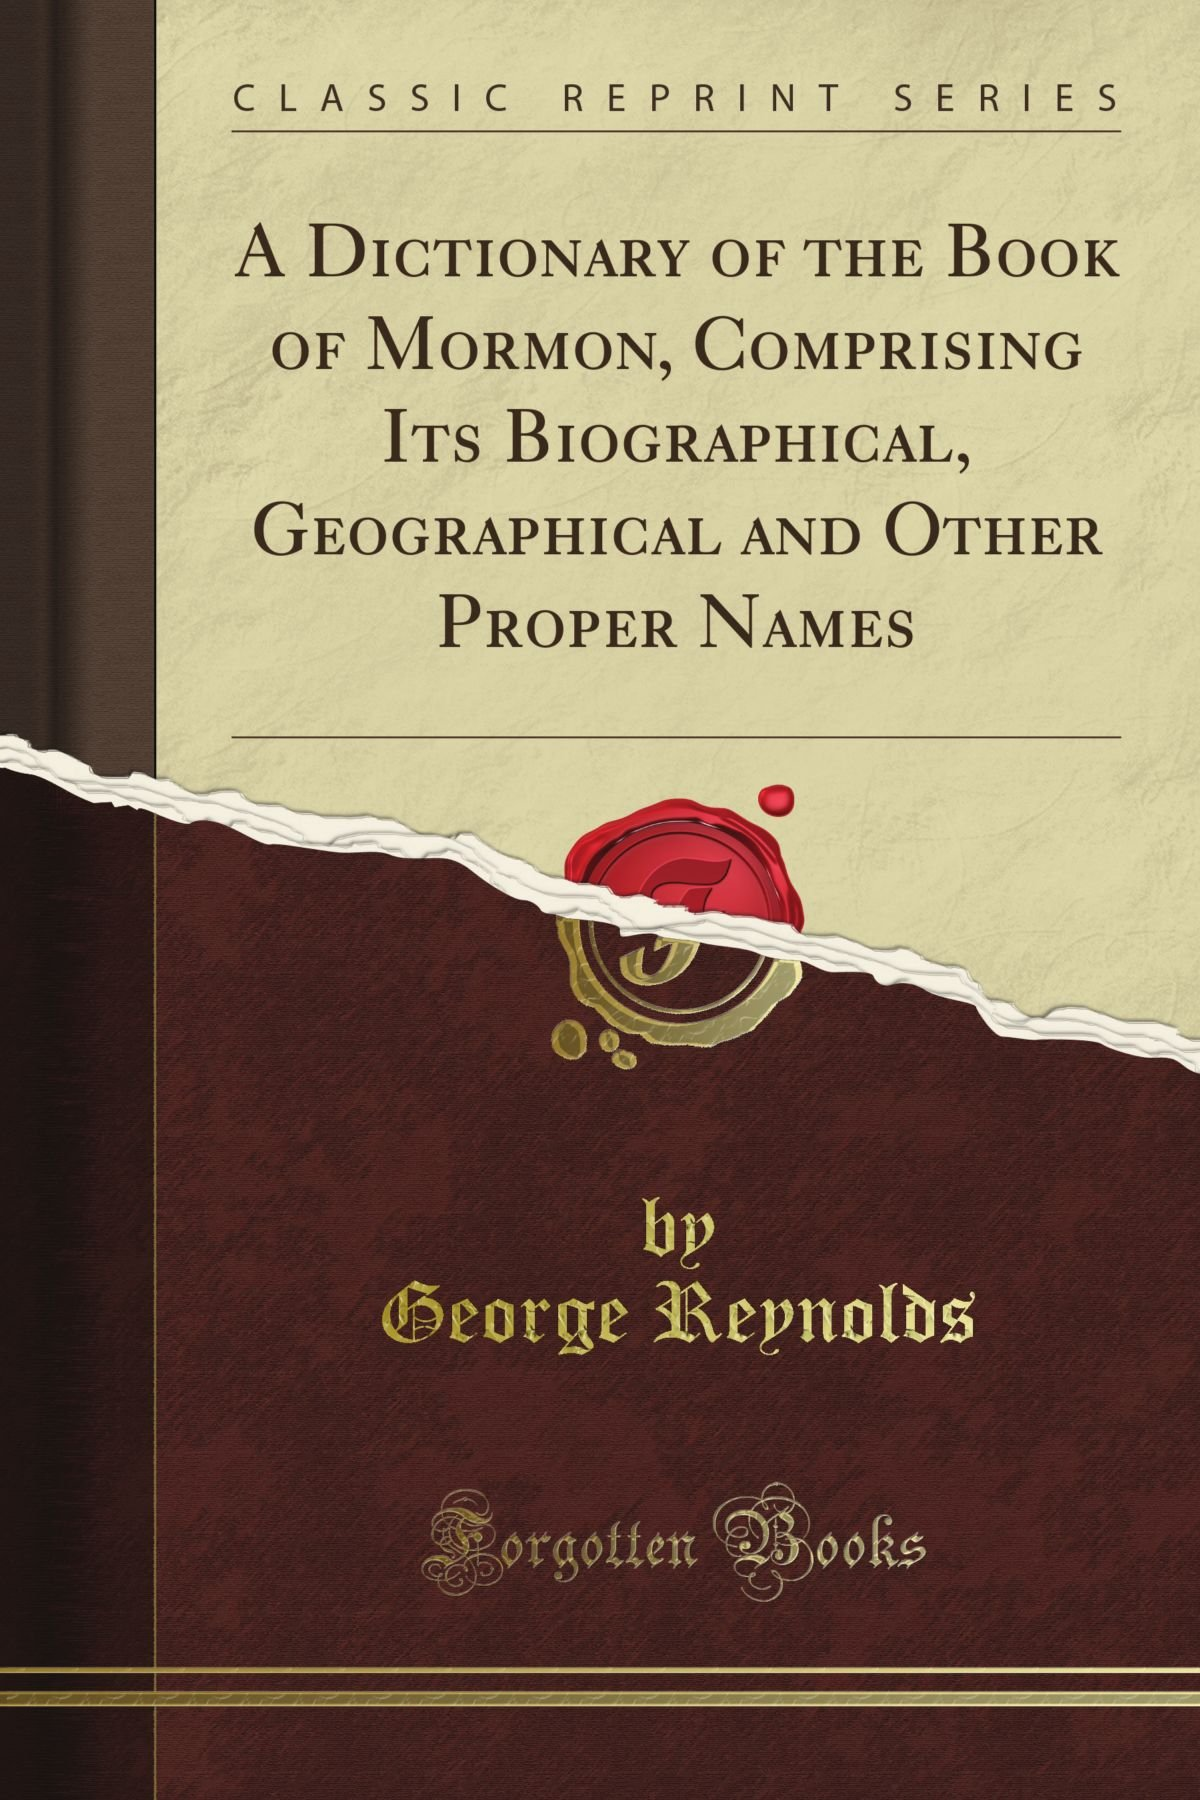 Read Online A Dictionary of the Book of Mormon, Comprising Its Biographical, Geographical and Other Proper Names (Classic Reprint) ebook